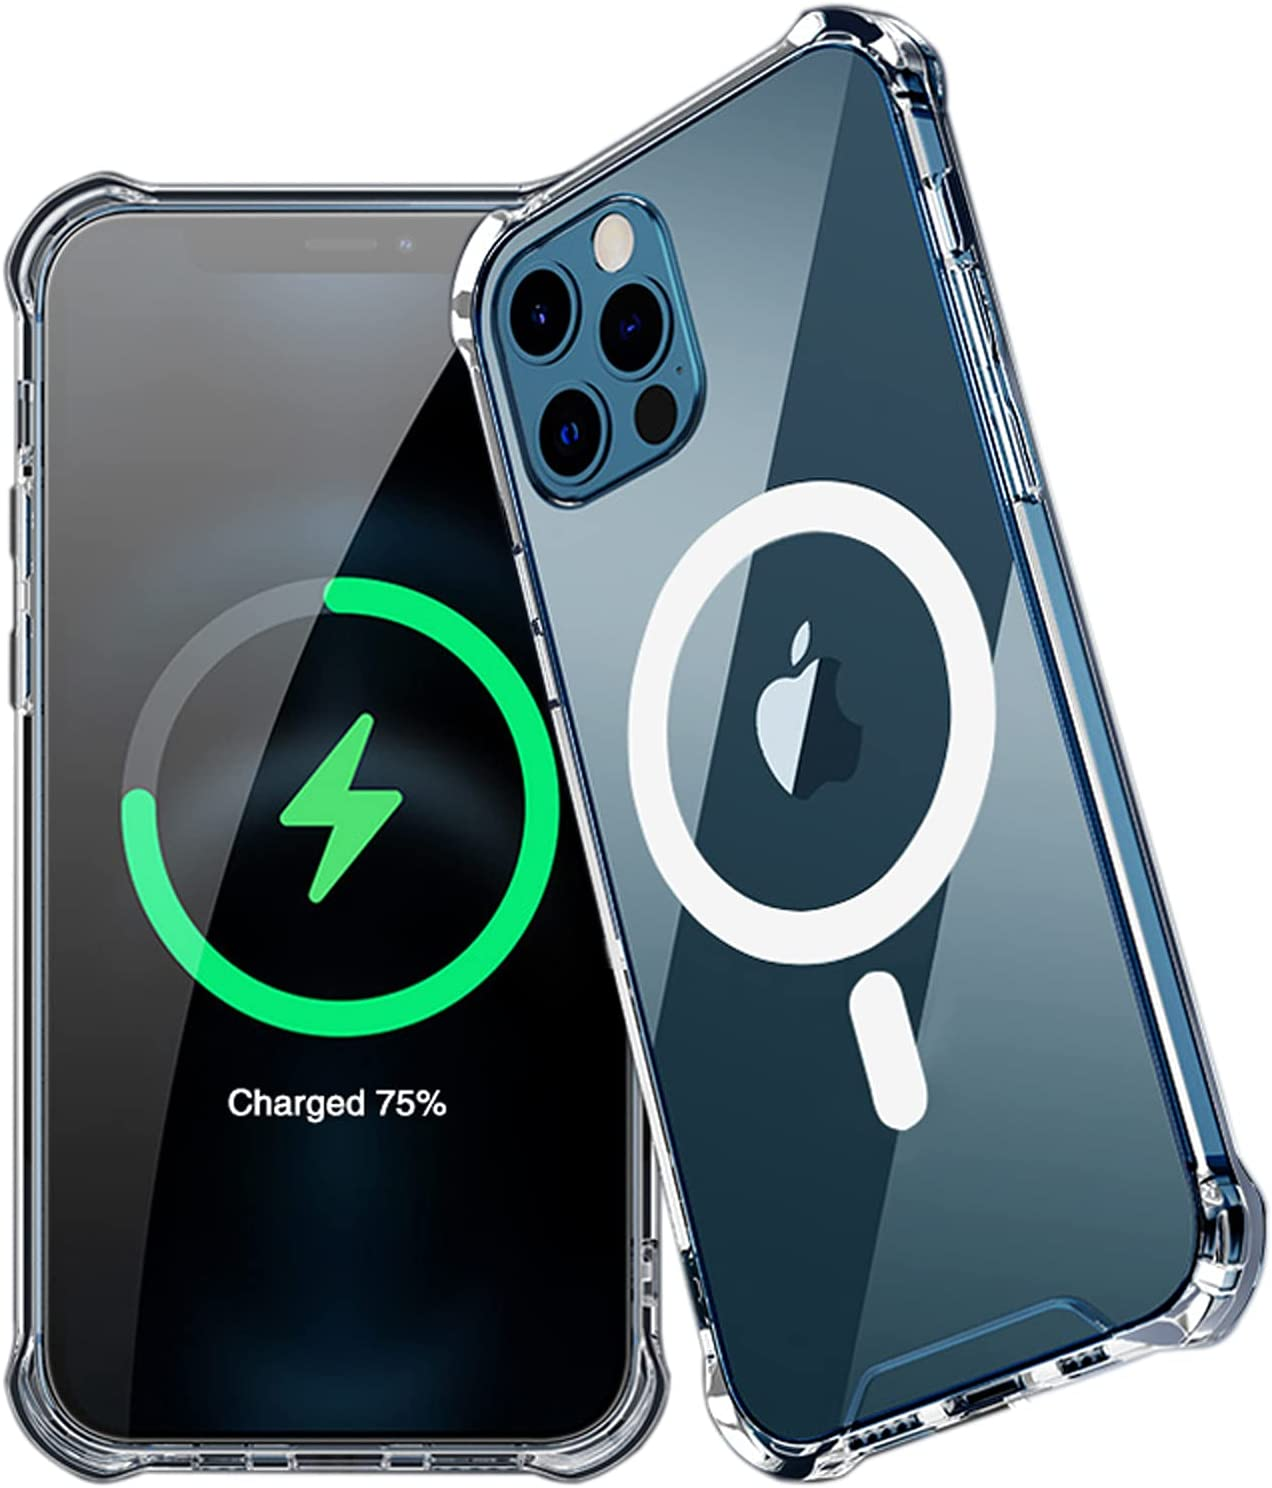 Svacoco Clear Magnetic Case for iPhone 12 Pro Max Case Compatible with Magnetic Fast Wireless Charging, [Anti-Yellowing], Bumper Shockproof Thin Crystal Clear Scratch Cover Protective Case 6.7inch